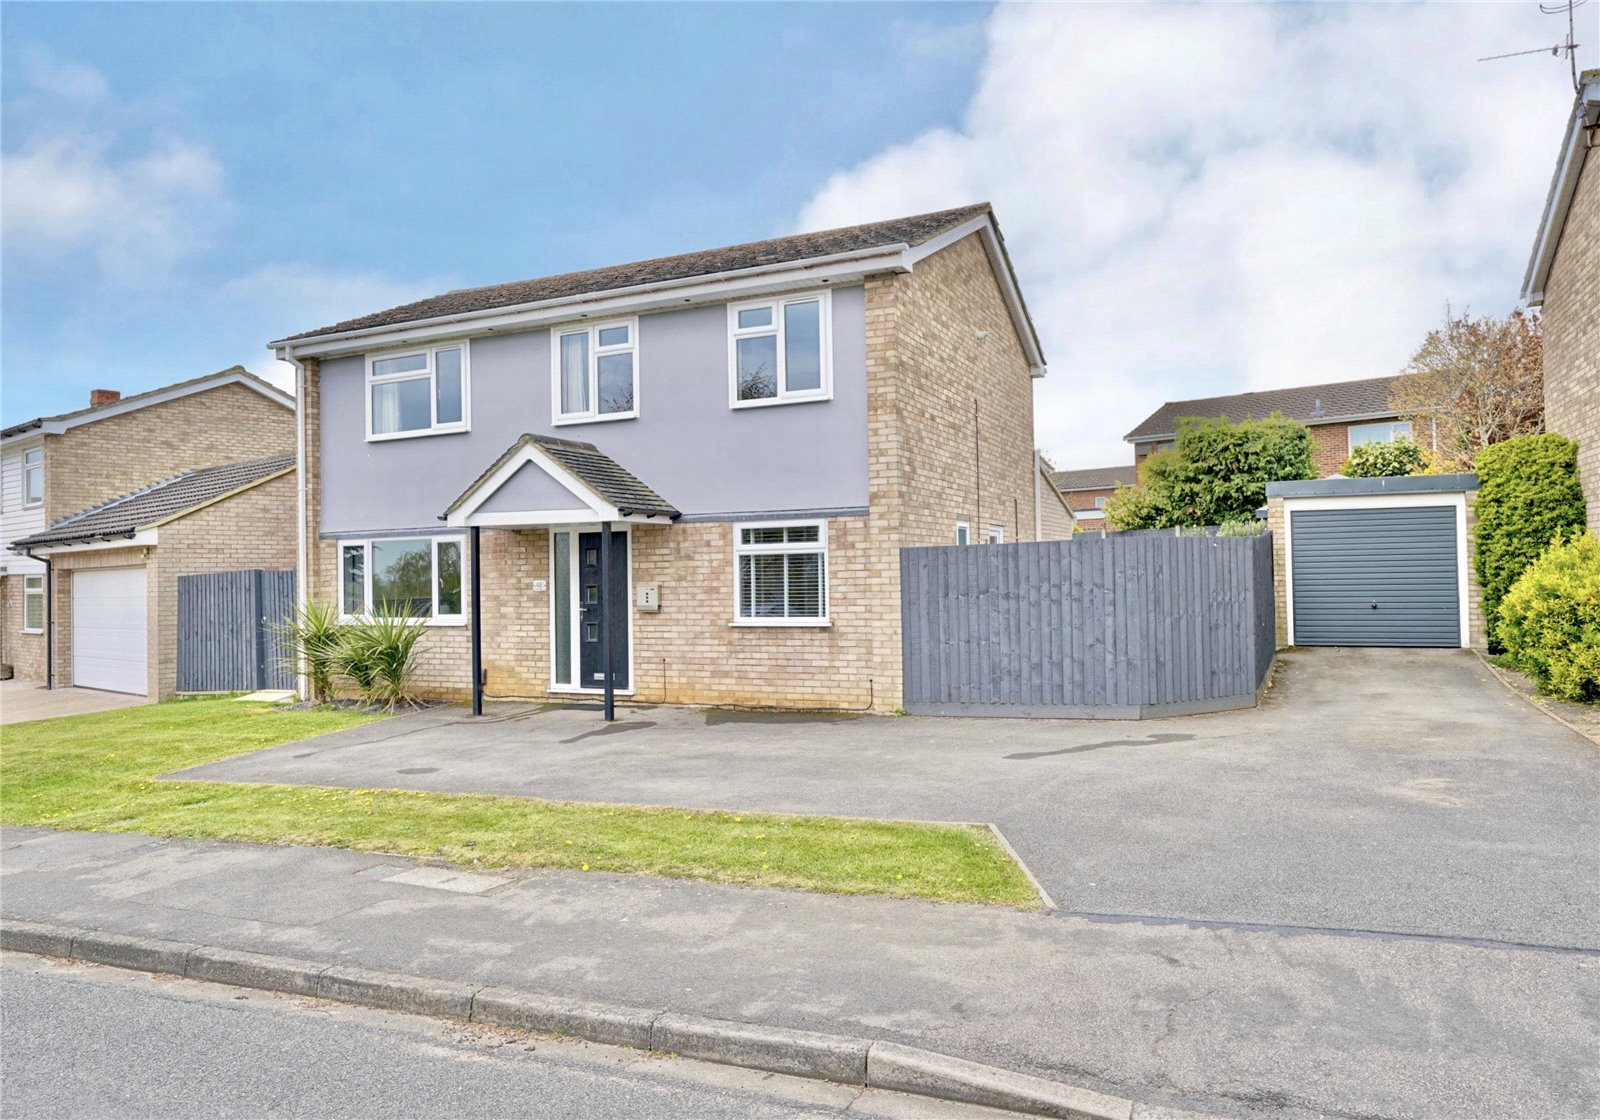 4 bed house for sale in Eaton Ford, PE19 7LH, PE19